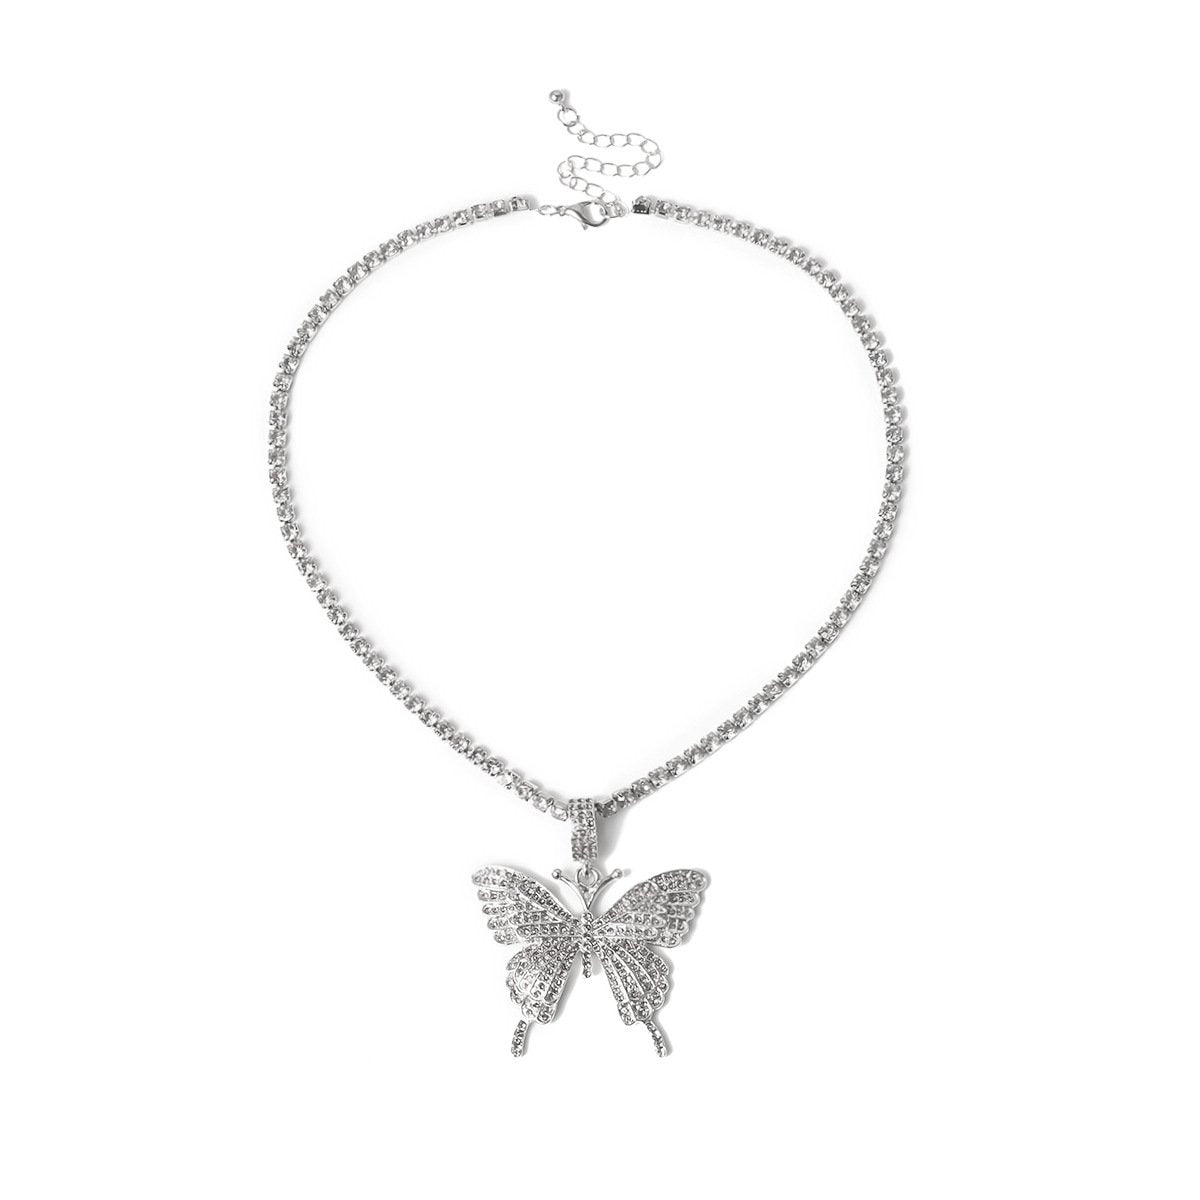 Butterfly Pendant Necklace Shiny Rhinestone Chain